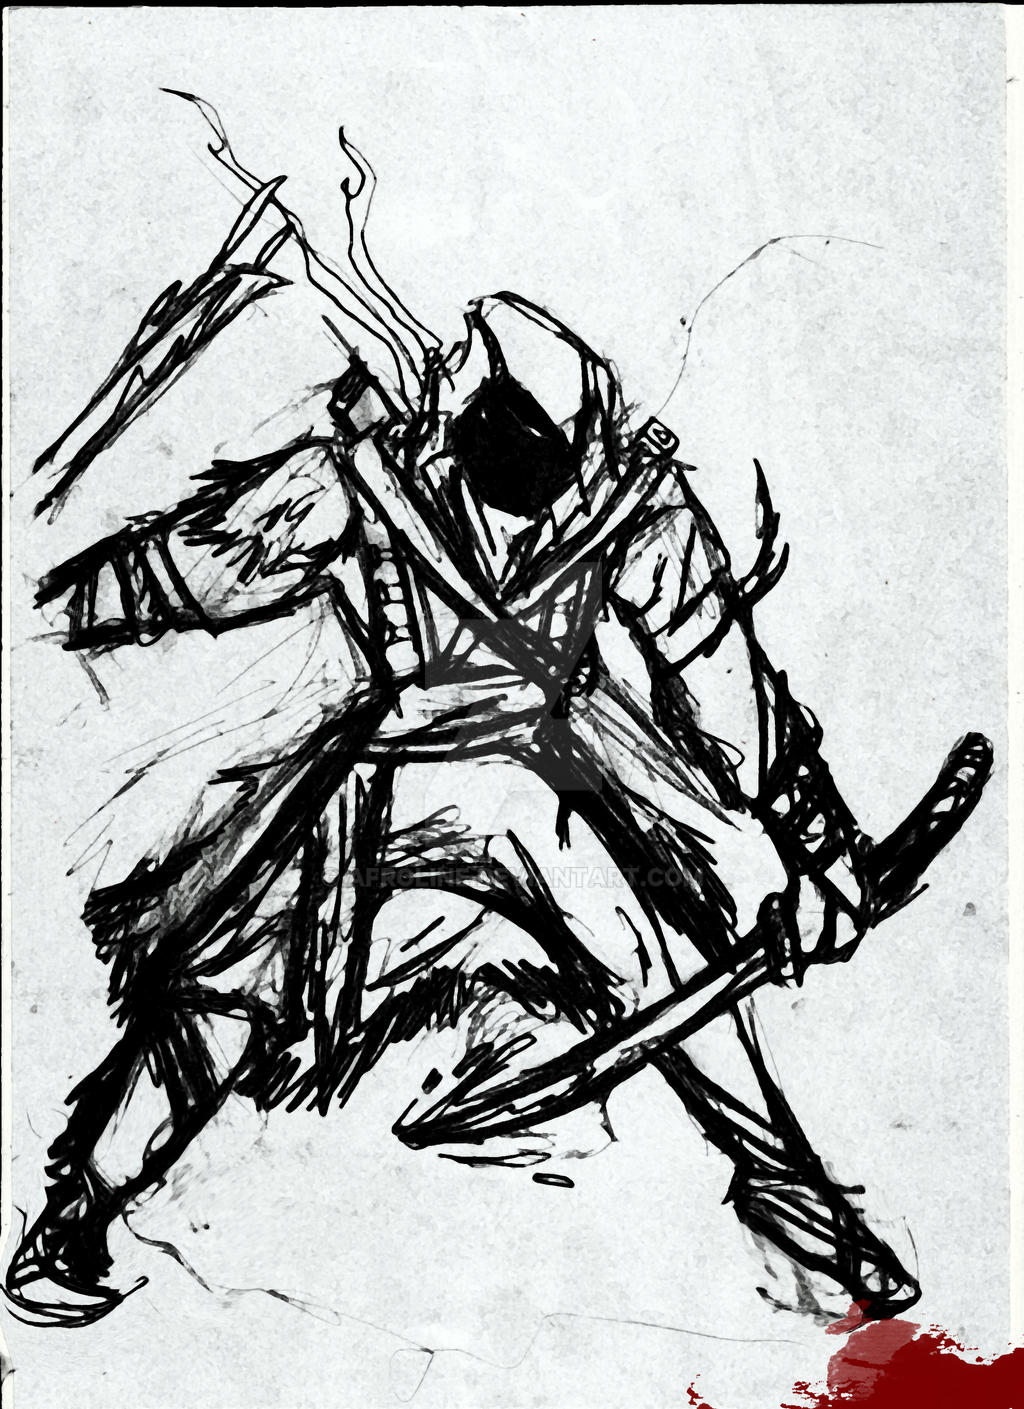 Ninja Assassin S Creed By Afroline On Deviantart